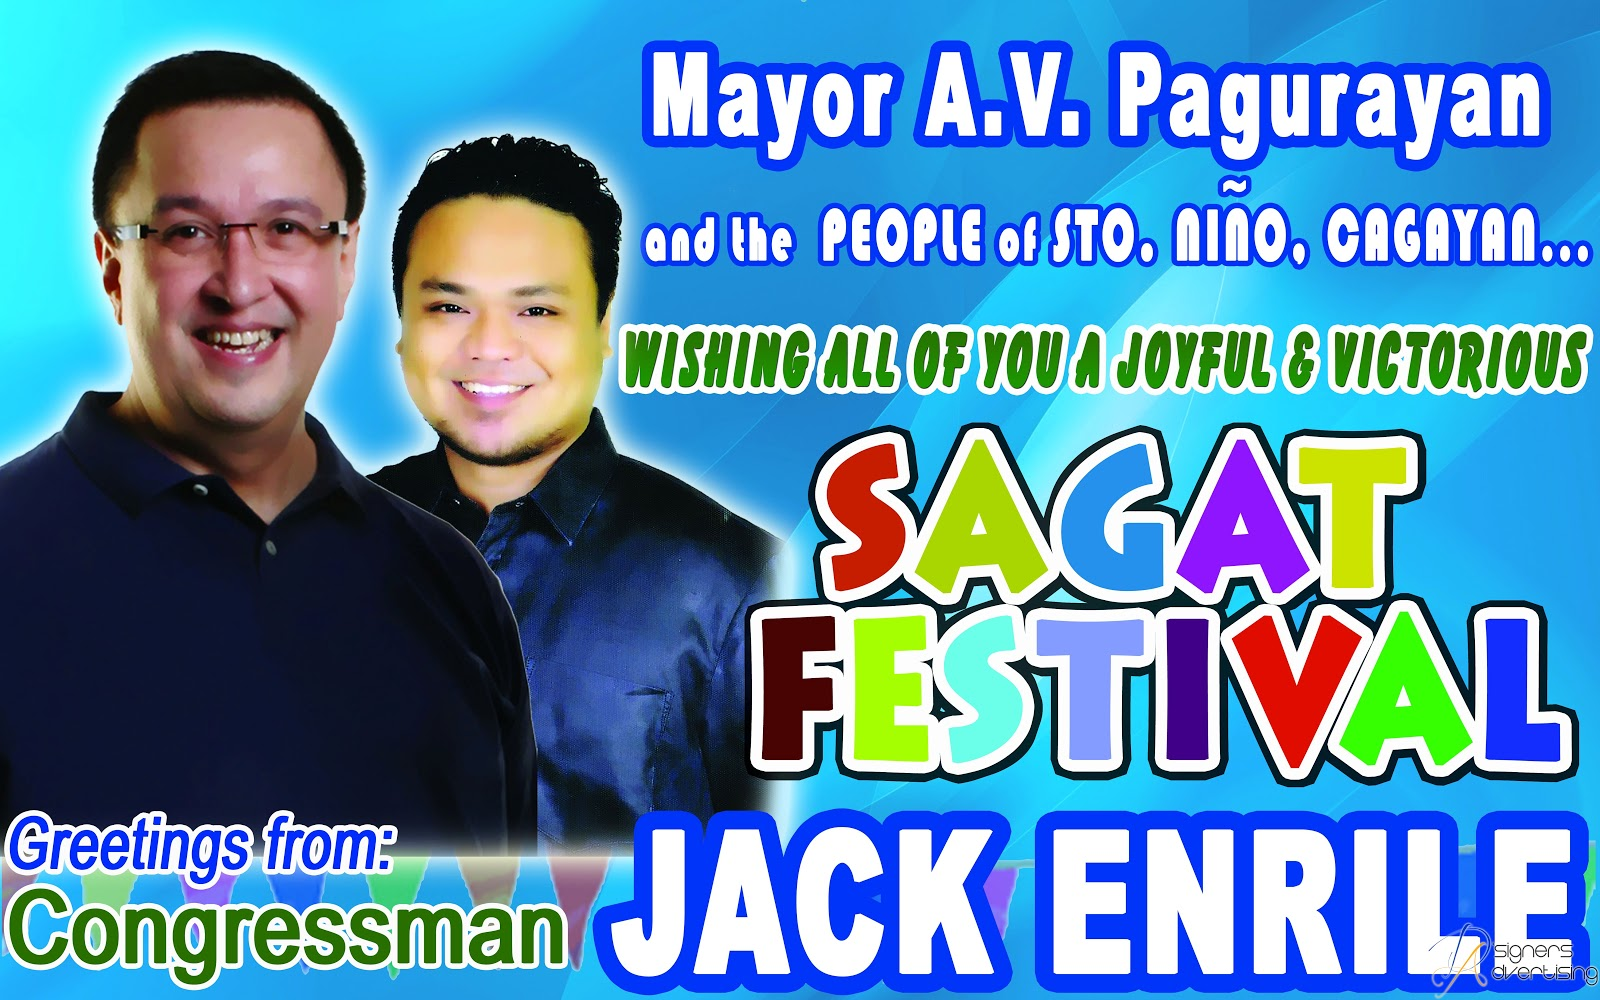 Dsigners advertising 2012 descriptions sagat festival greetings from cong jack enrile to mayor av pagurayan and the people of sto nino cagayan m4hsunfo